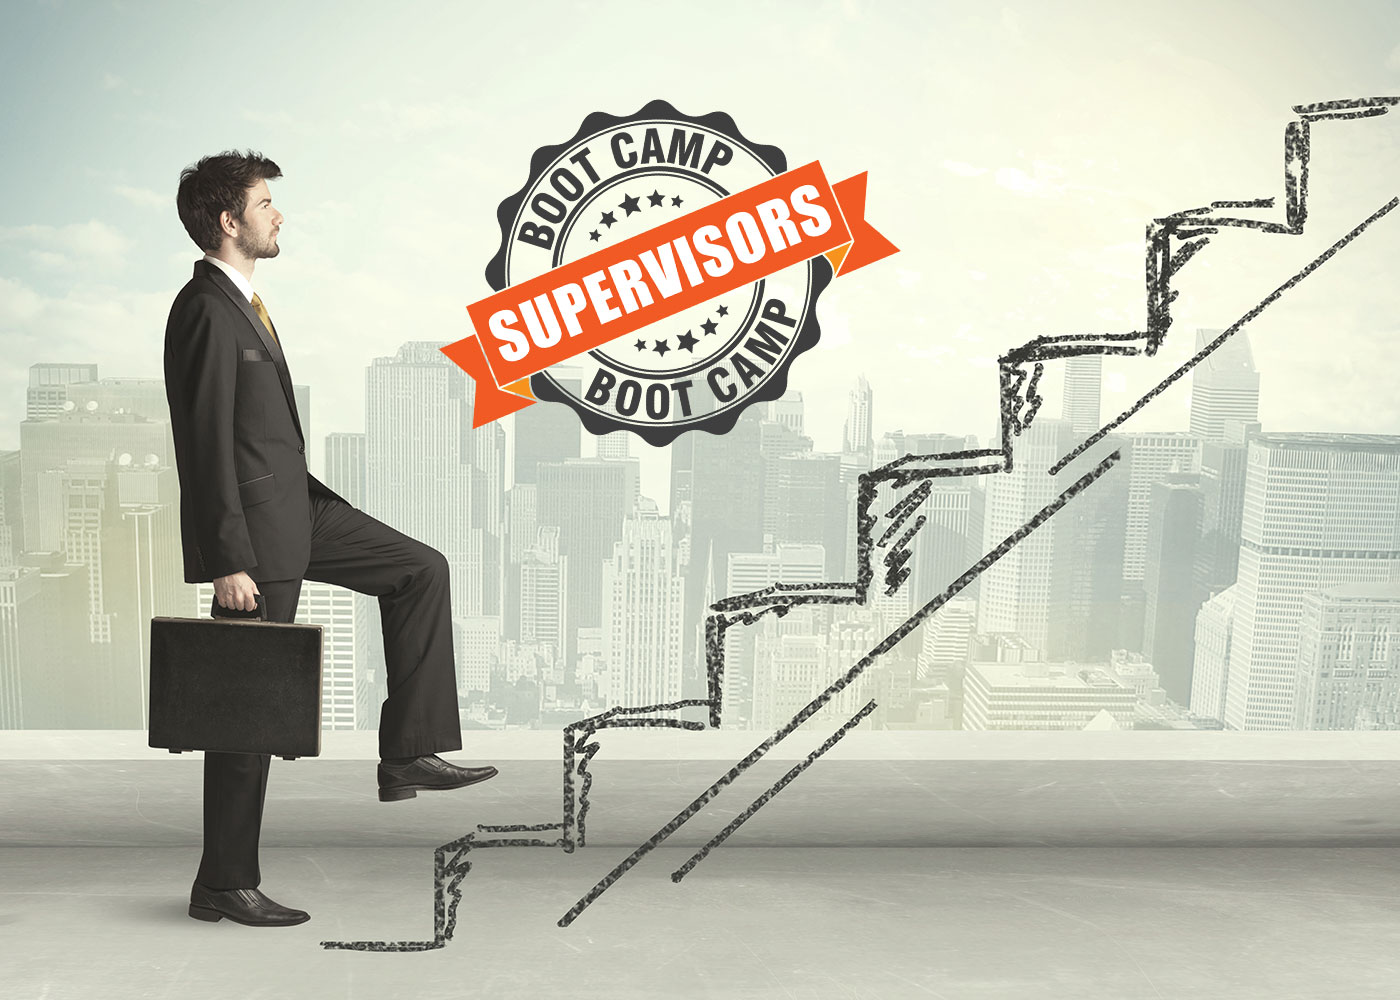 Supervisors Boot Camp